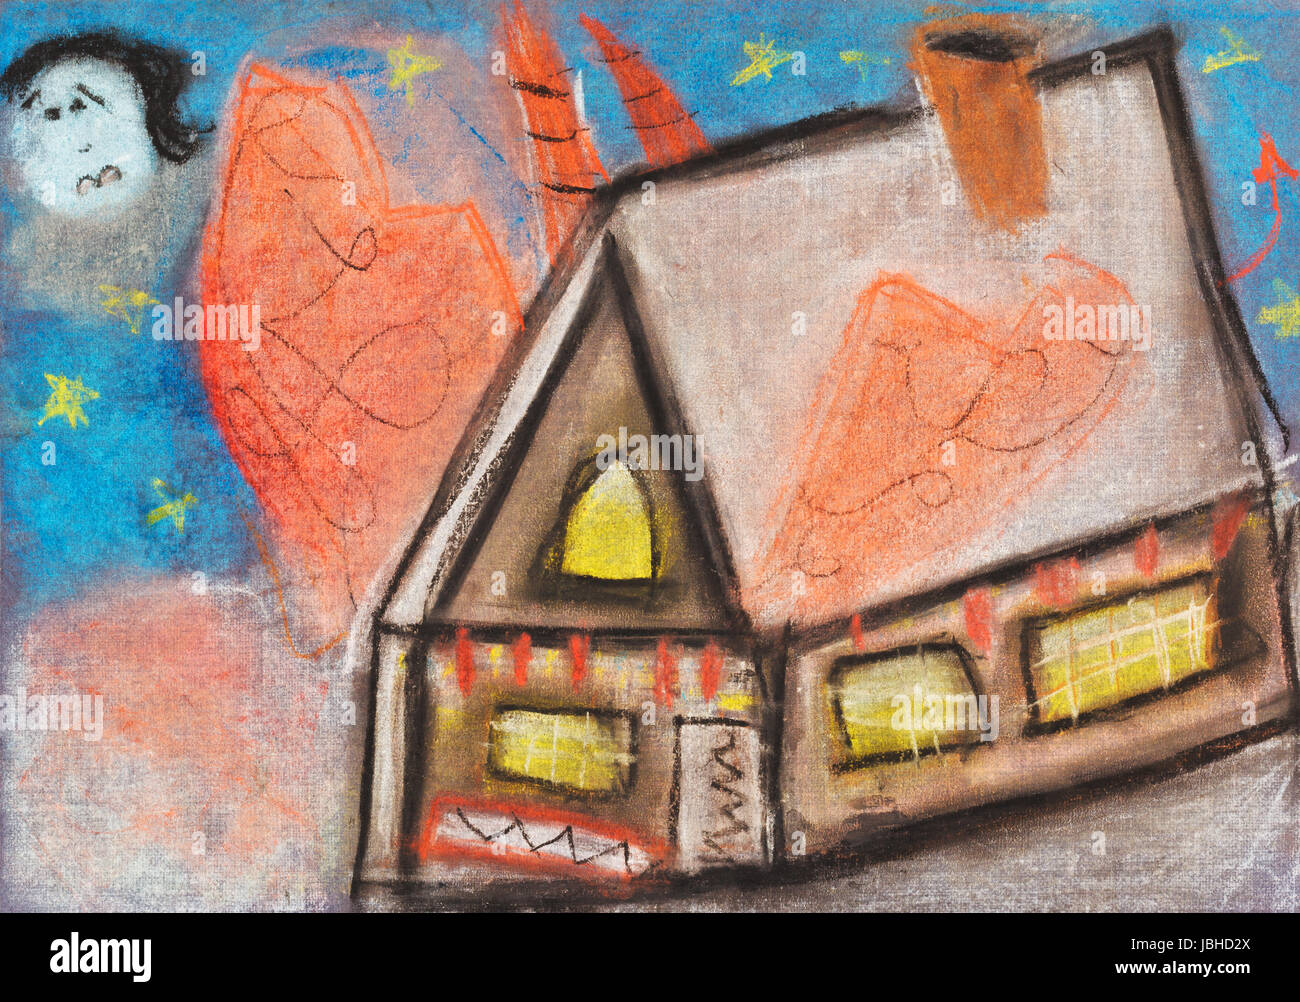 Kids at night with moon royalty free stock photography image - Stock Photo Children Drawing Country House In Night Under Blue Sky With Full Moon